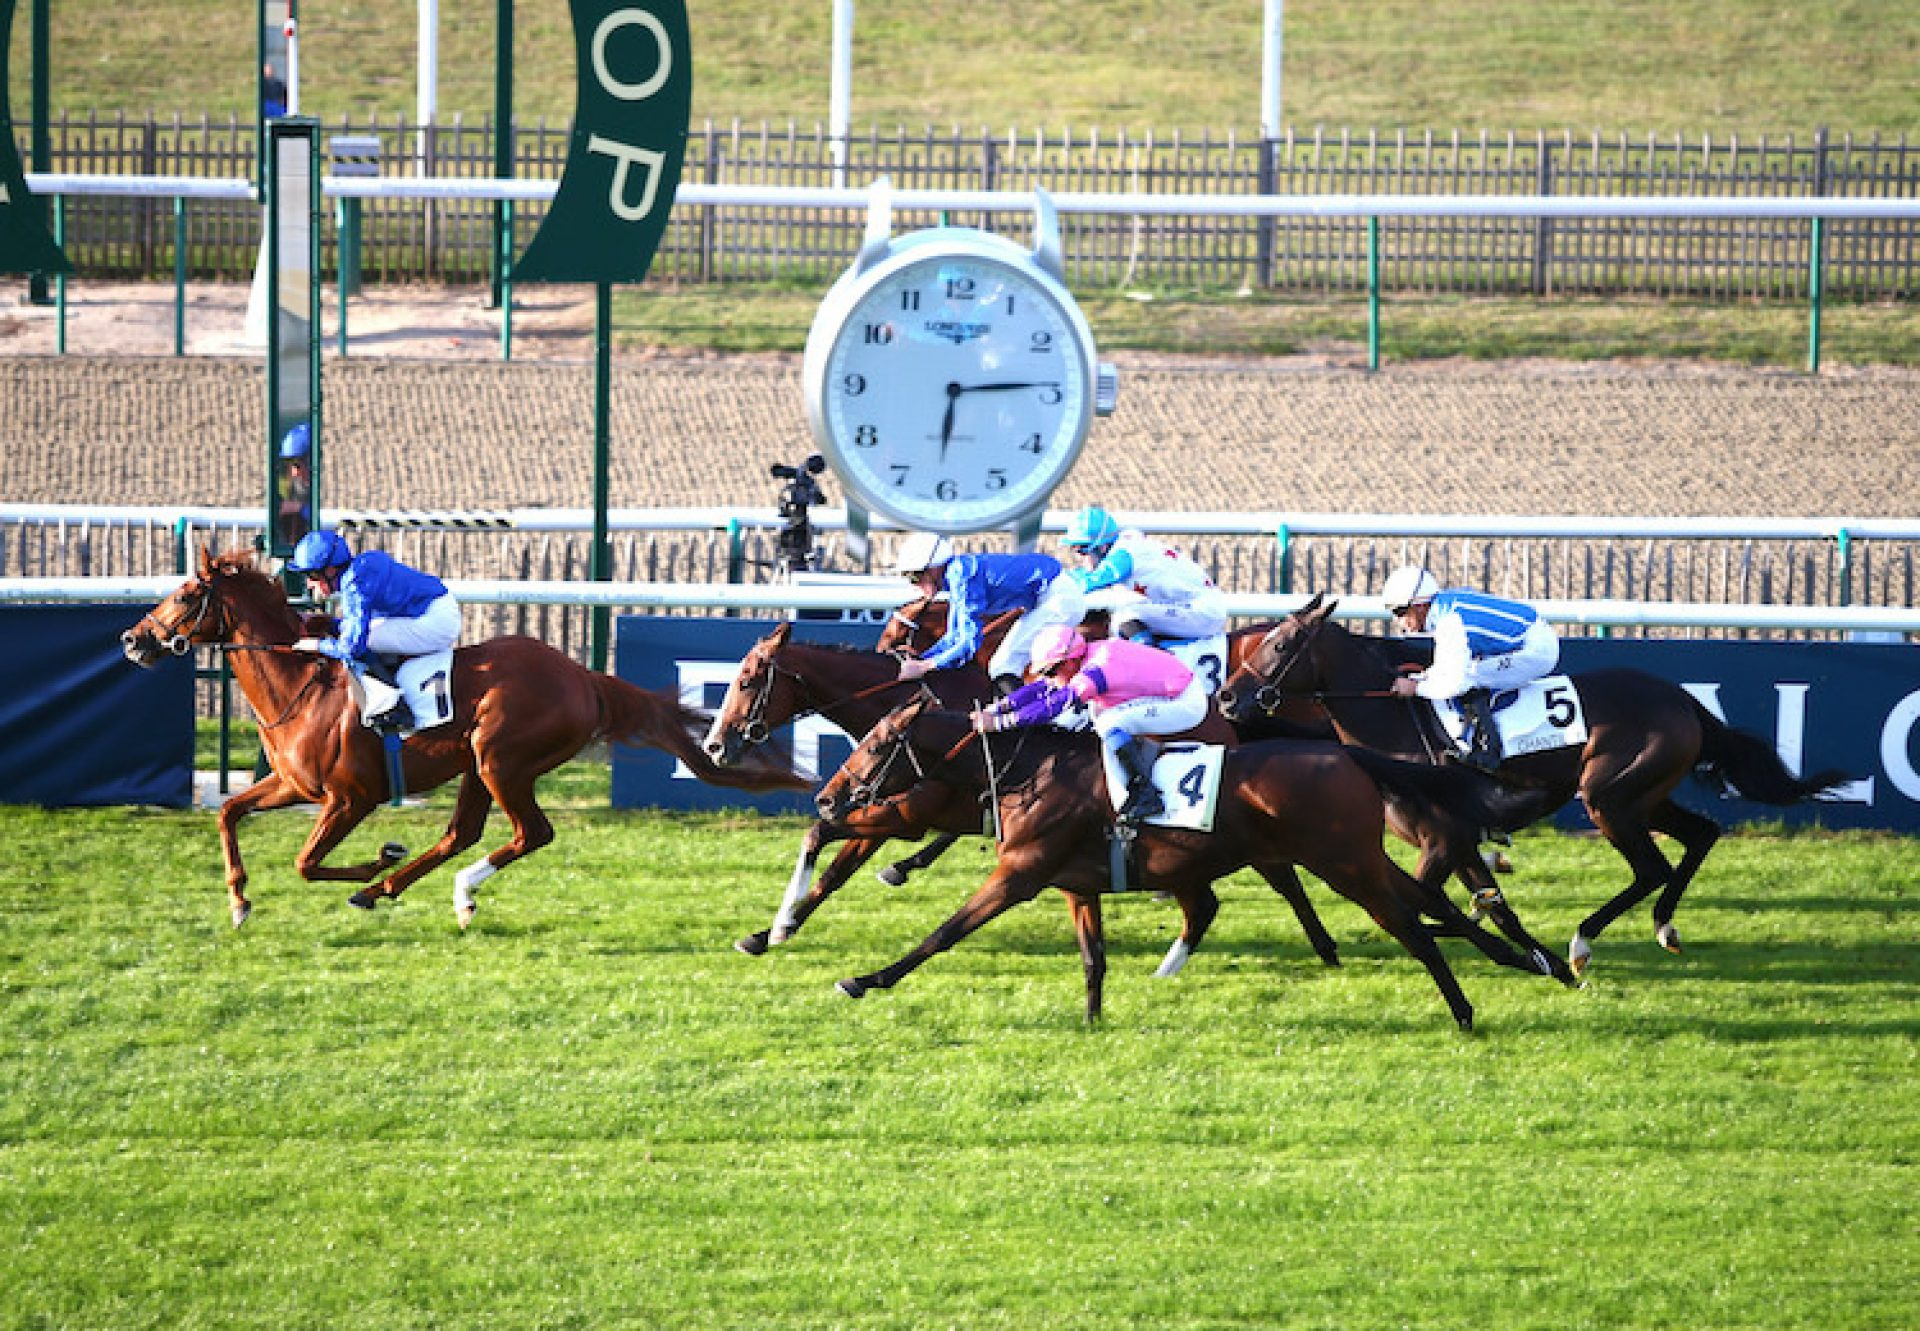 Line Of Duty (Galileo) winning the G3 Prix de Conde at Chantilly